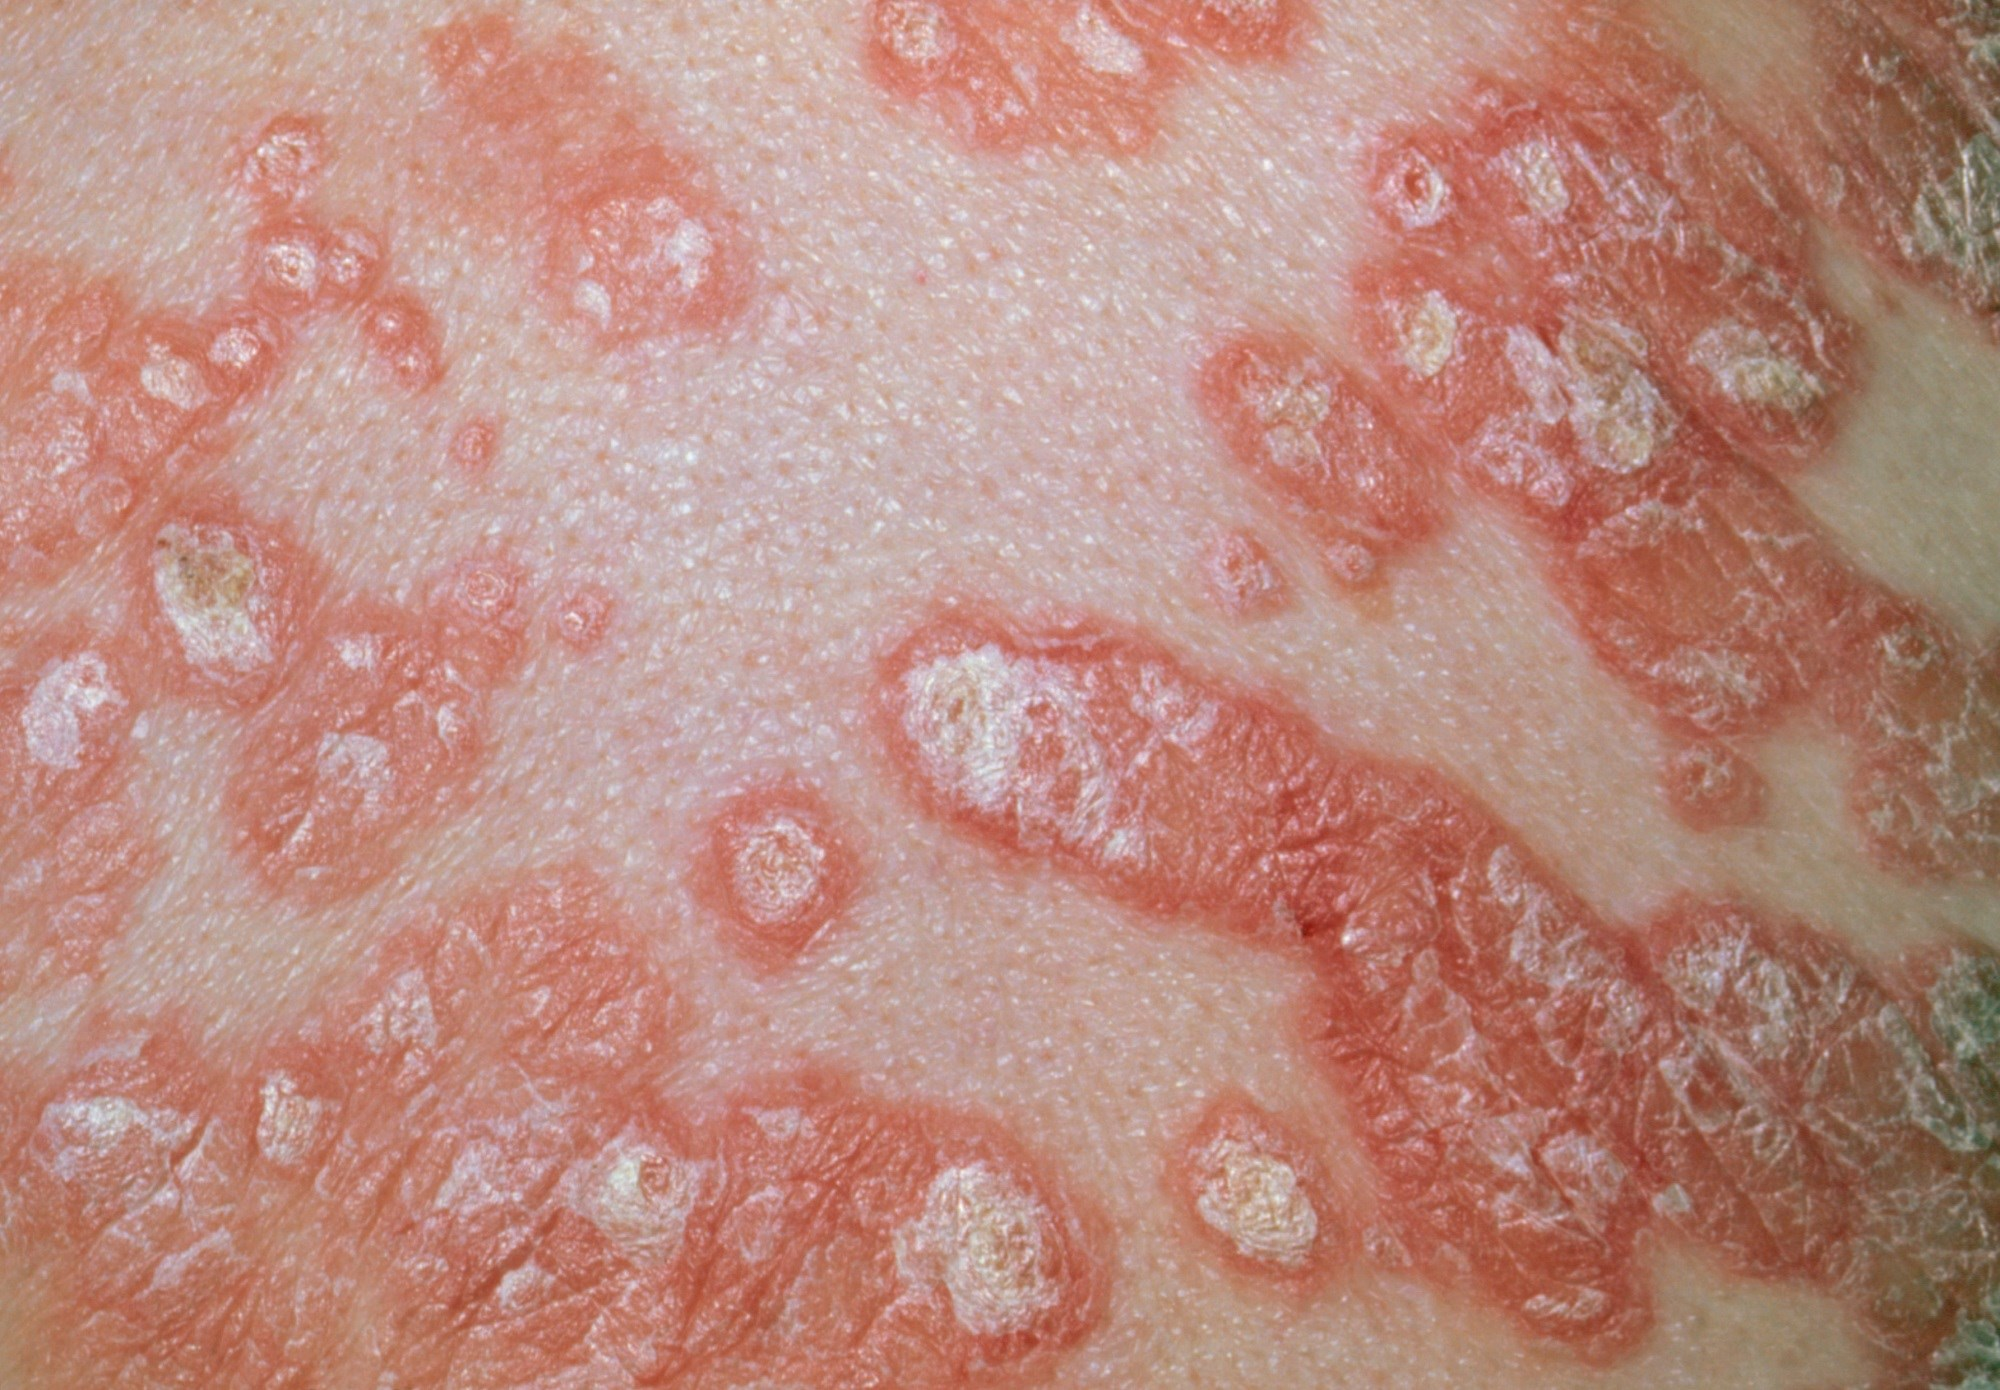 Safety Outcomes Associated With Apremilast Use in Psoriasis